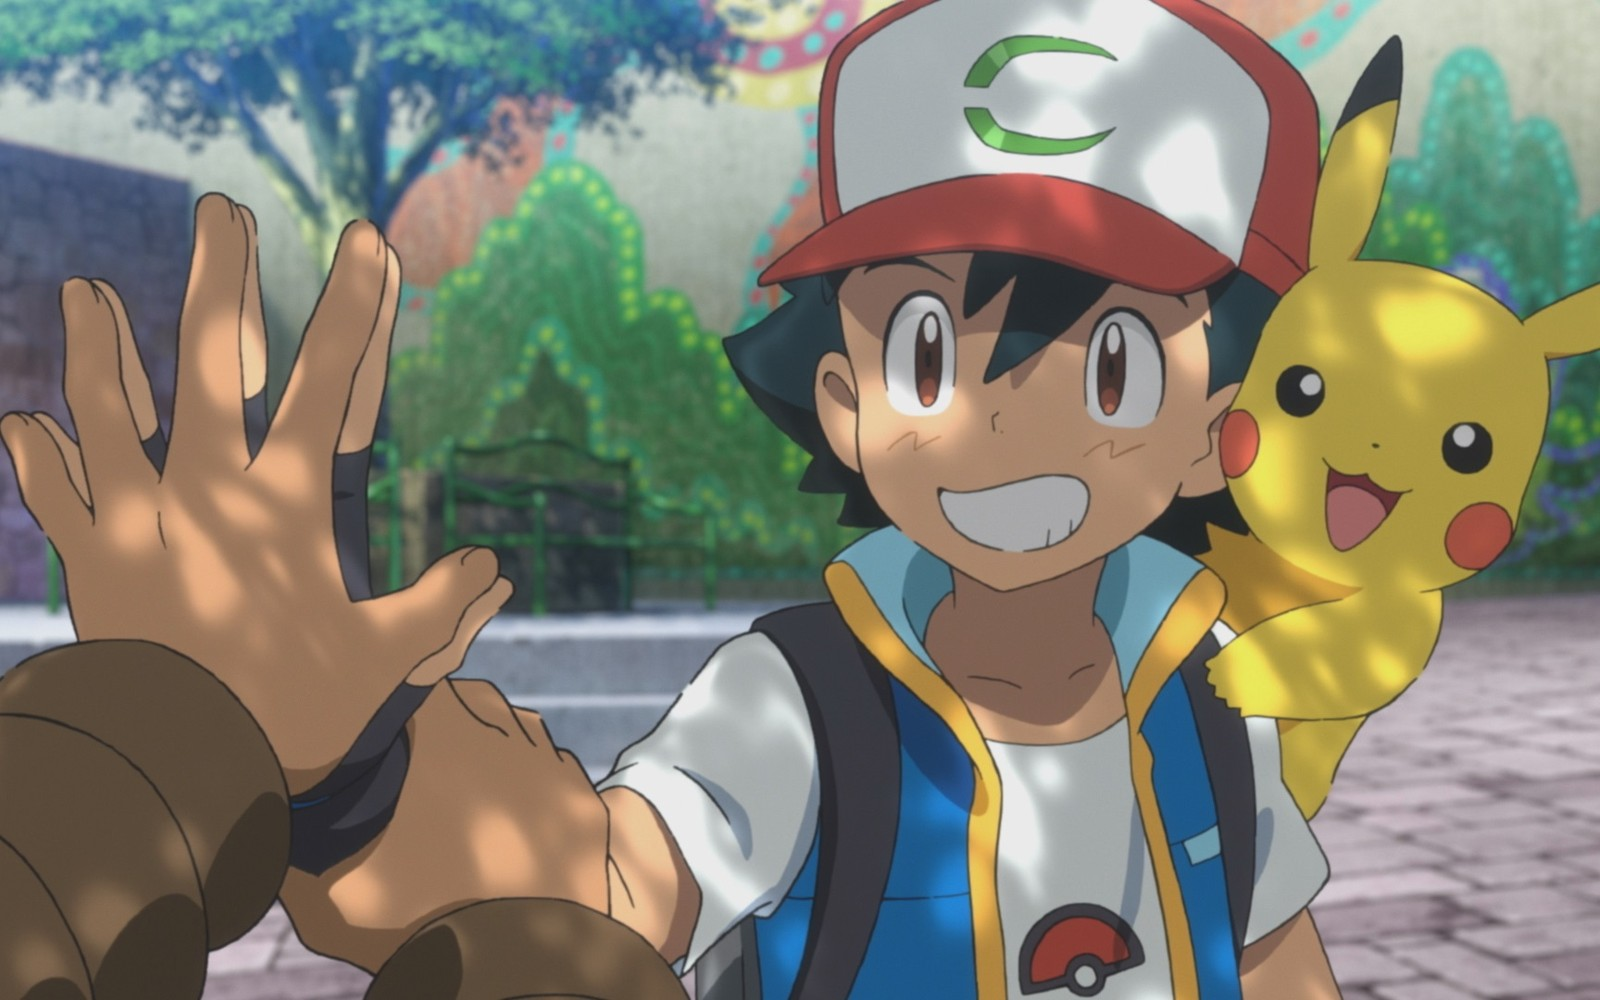 The latest animated Pokémon movie is coming to Netflix on October 8th